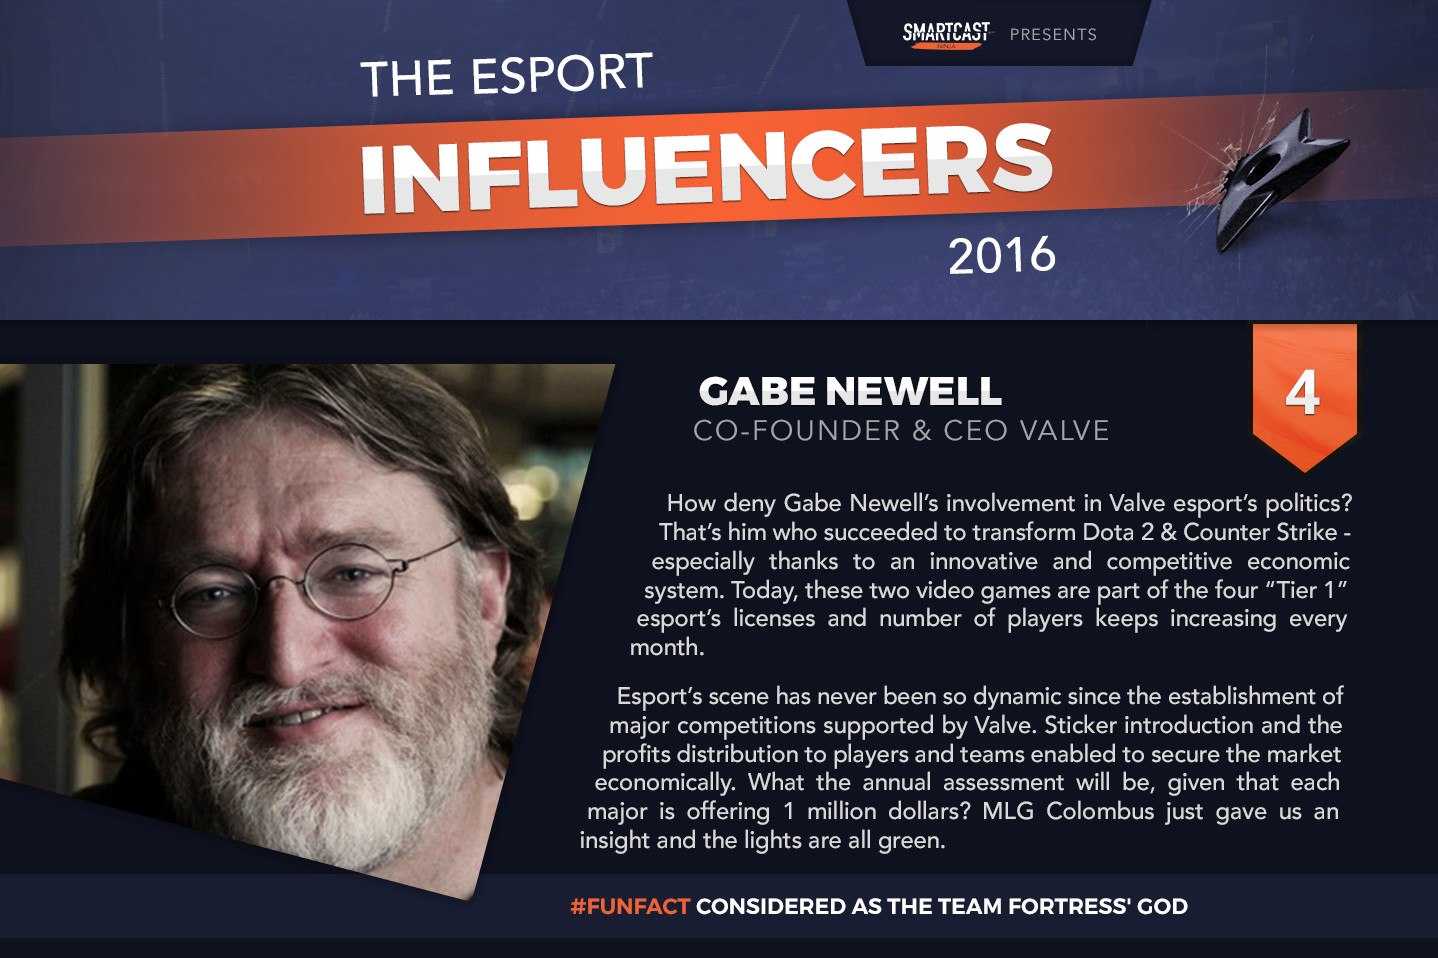 smartcast-influencer-esport-4-gabe_newell-en